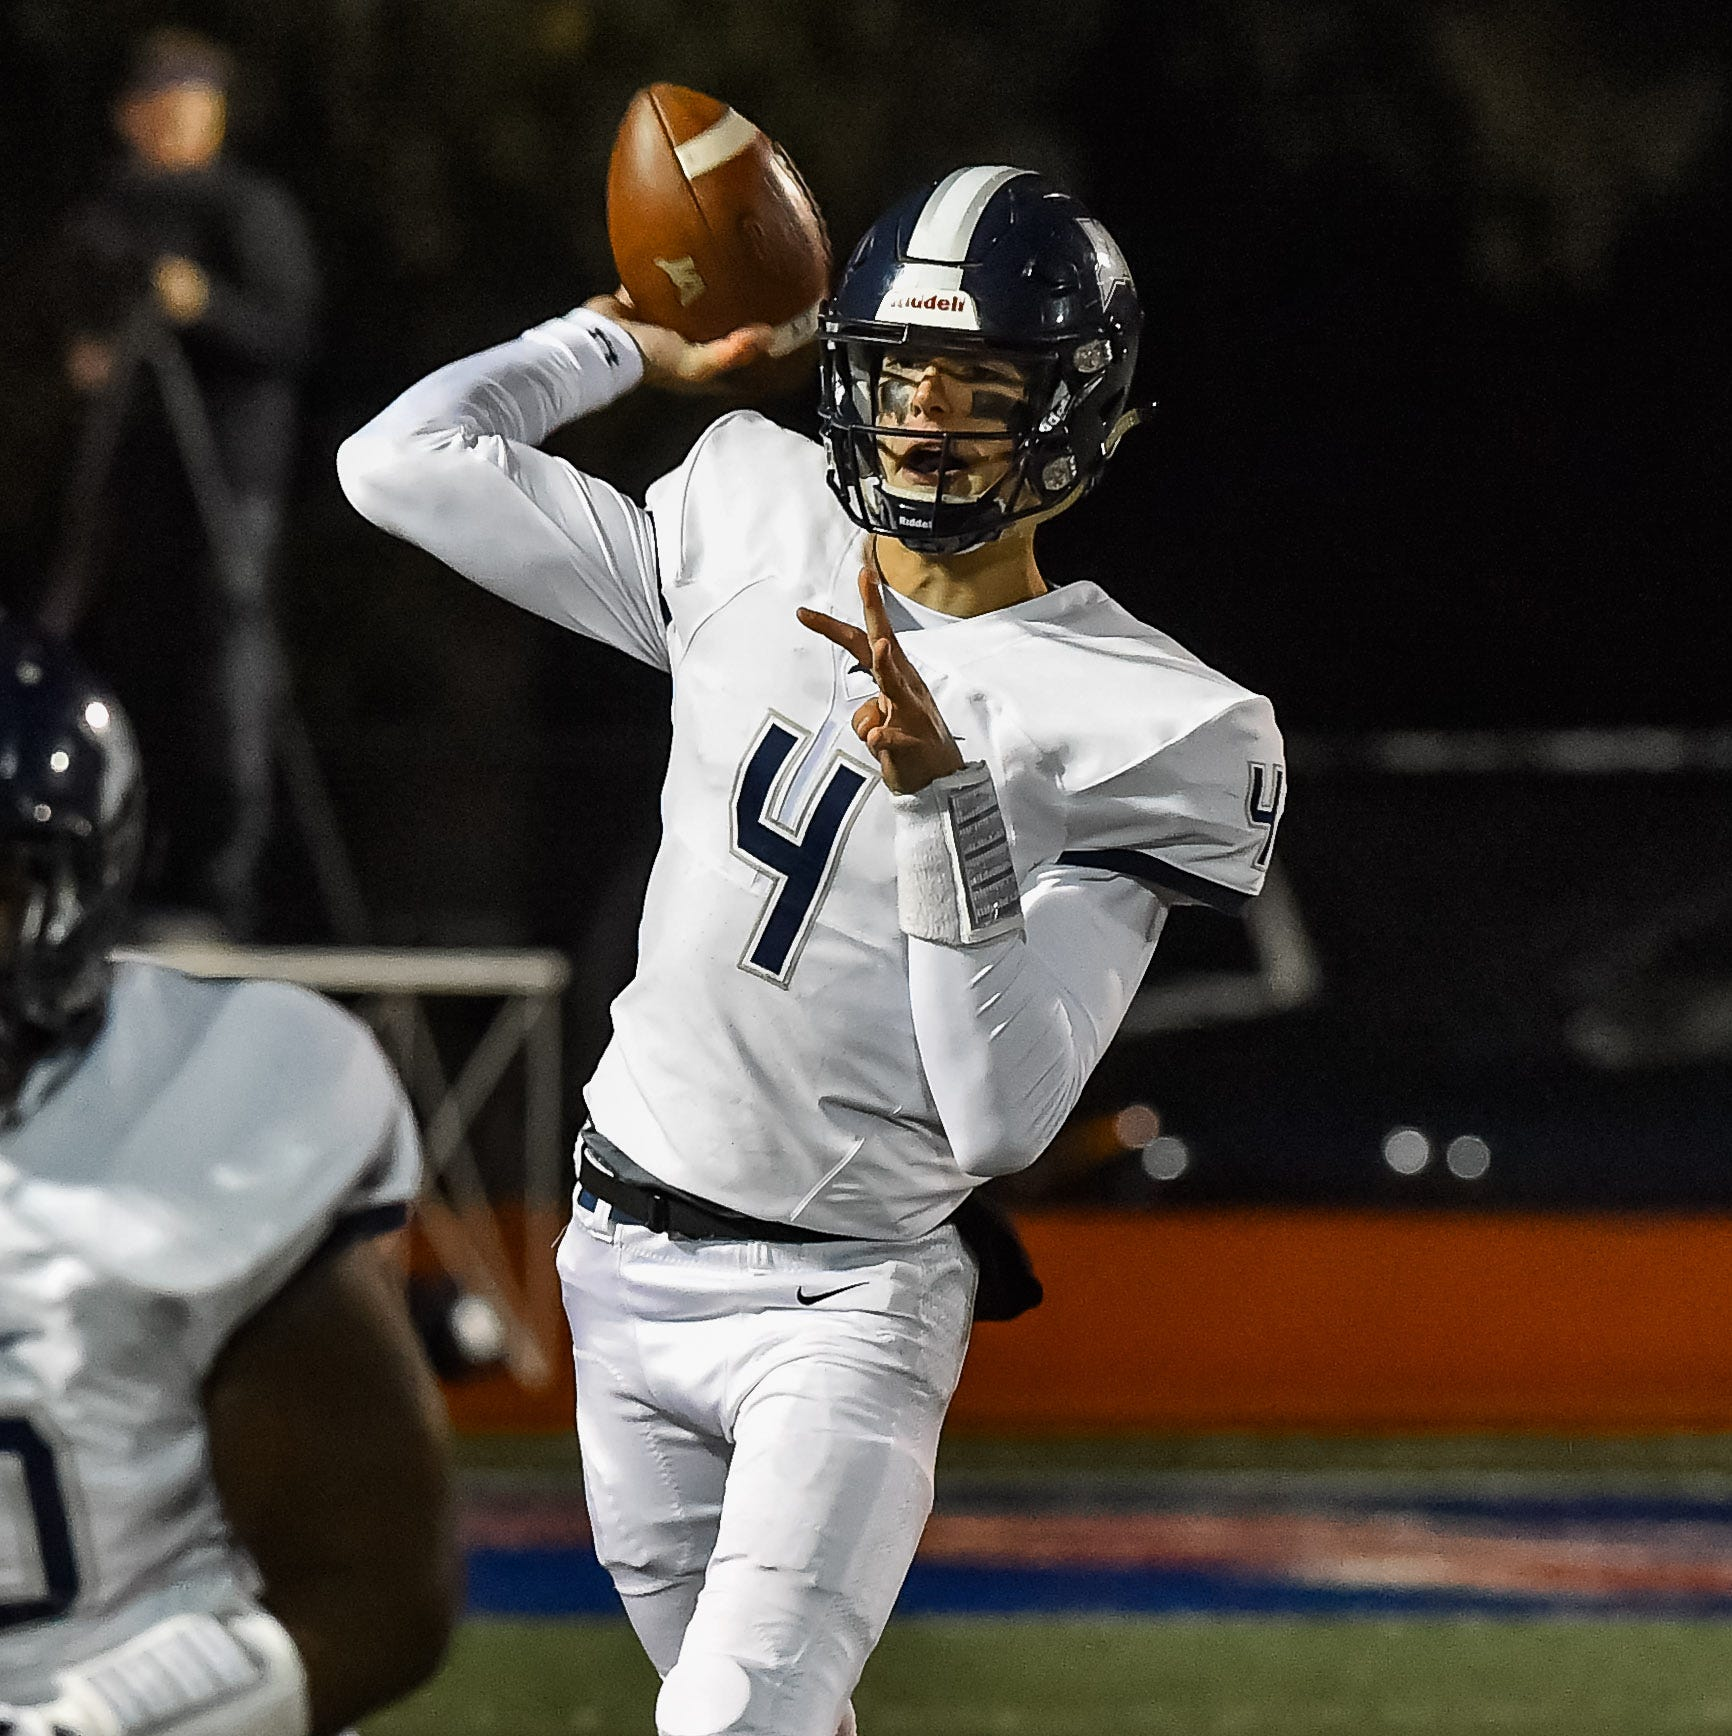 Jackson Academy quarterback announces commitment to Ole Miss